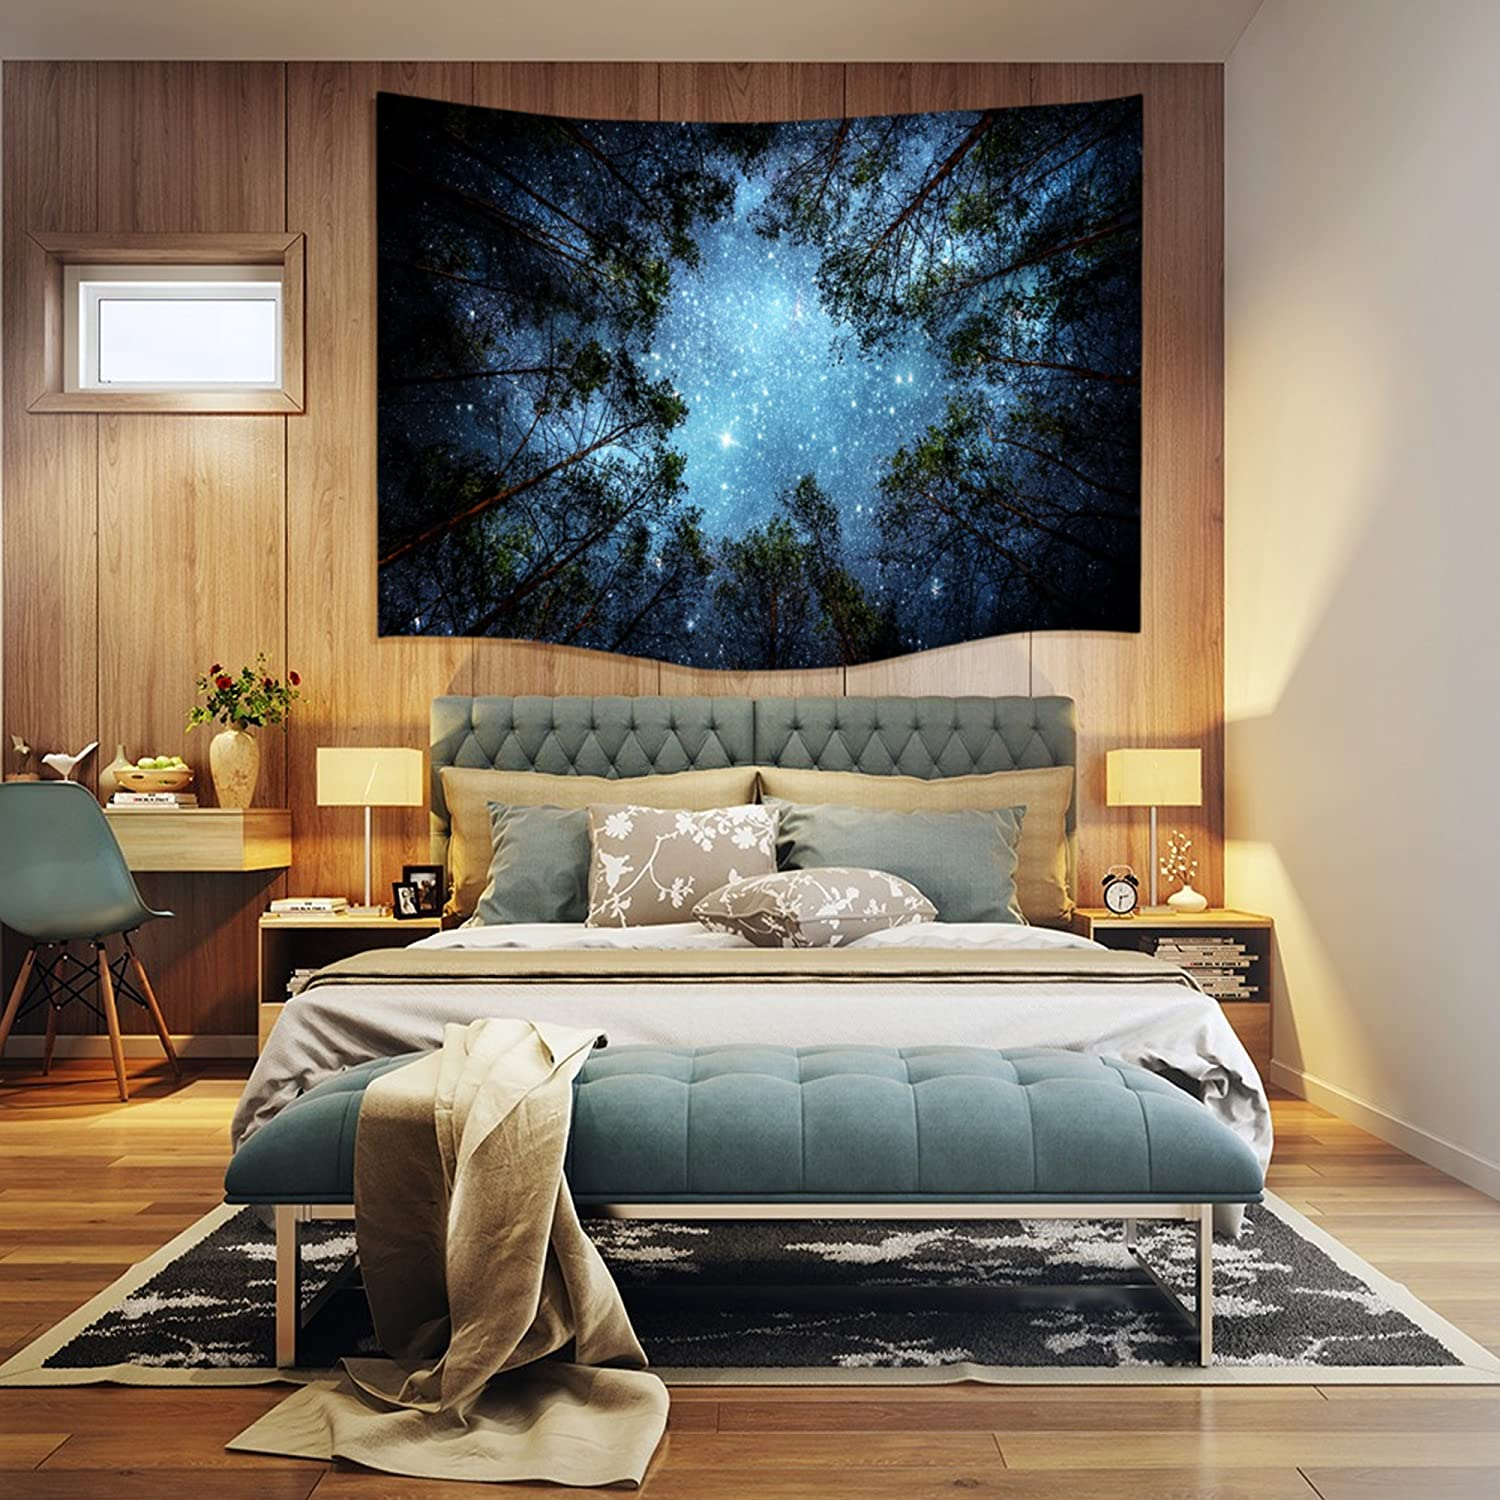 Wall Hanging Decor Part - 20: Starry Night Sky Wall Hanging Tapestry, Ethereal Celestial Wall Hanging  Decor Forest Milky Way Boho Tapestry Wall Art Home Decor [90 inches x 60  inches]